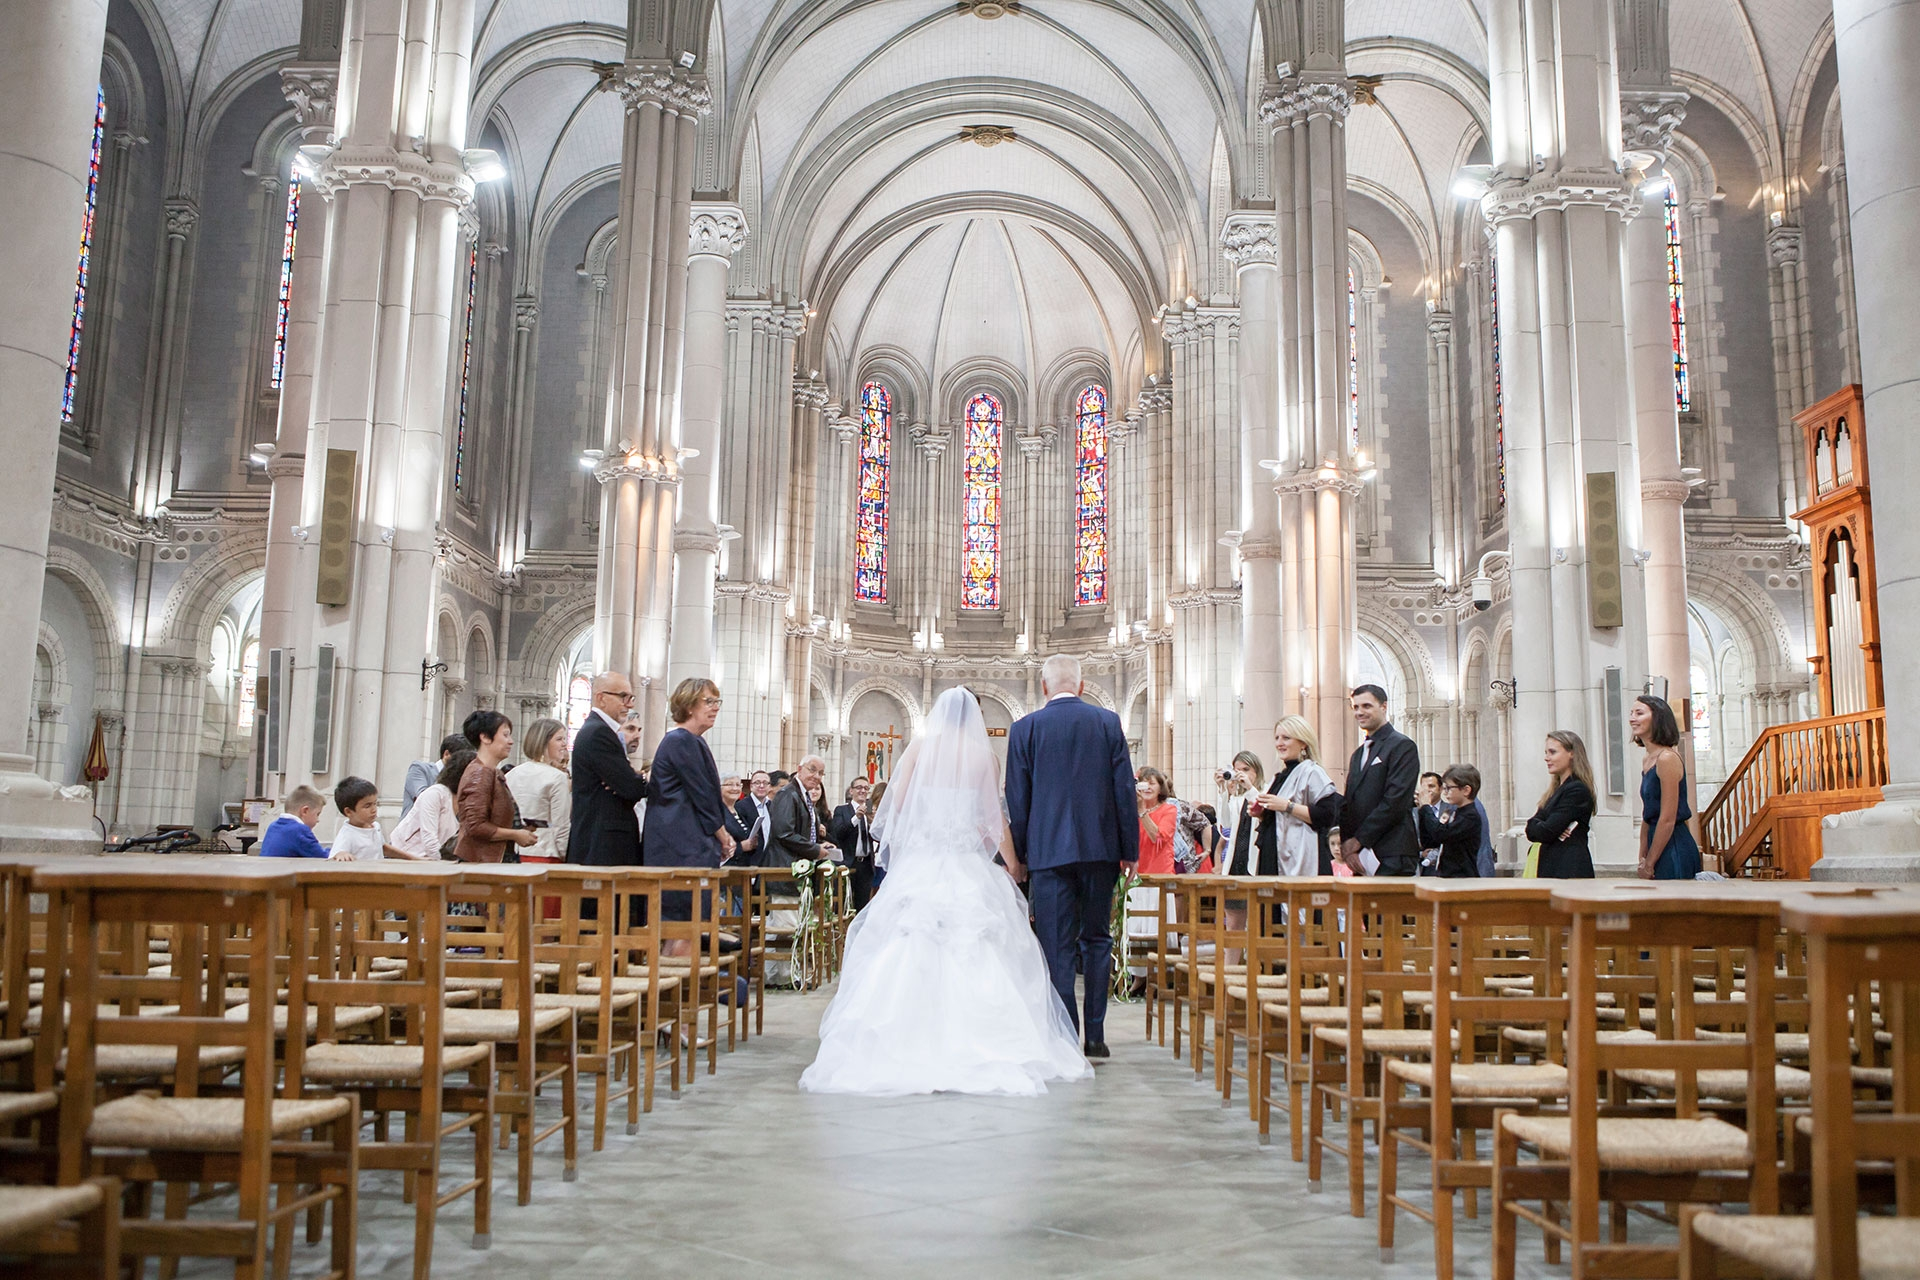 particuliers-mariage-oui-delphineguillaume-06